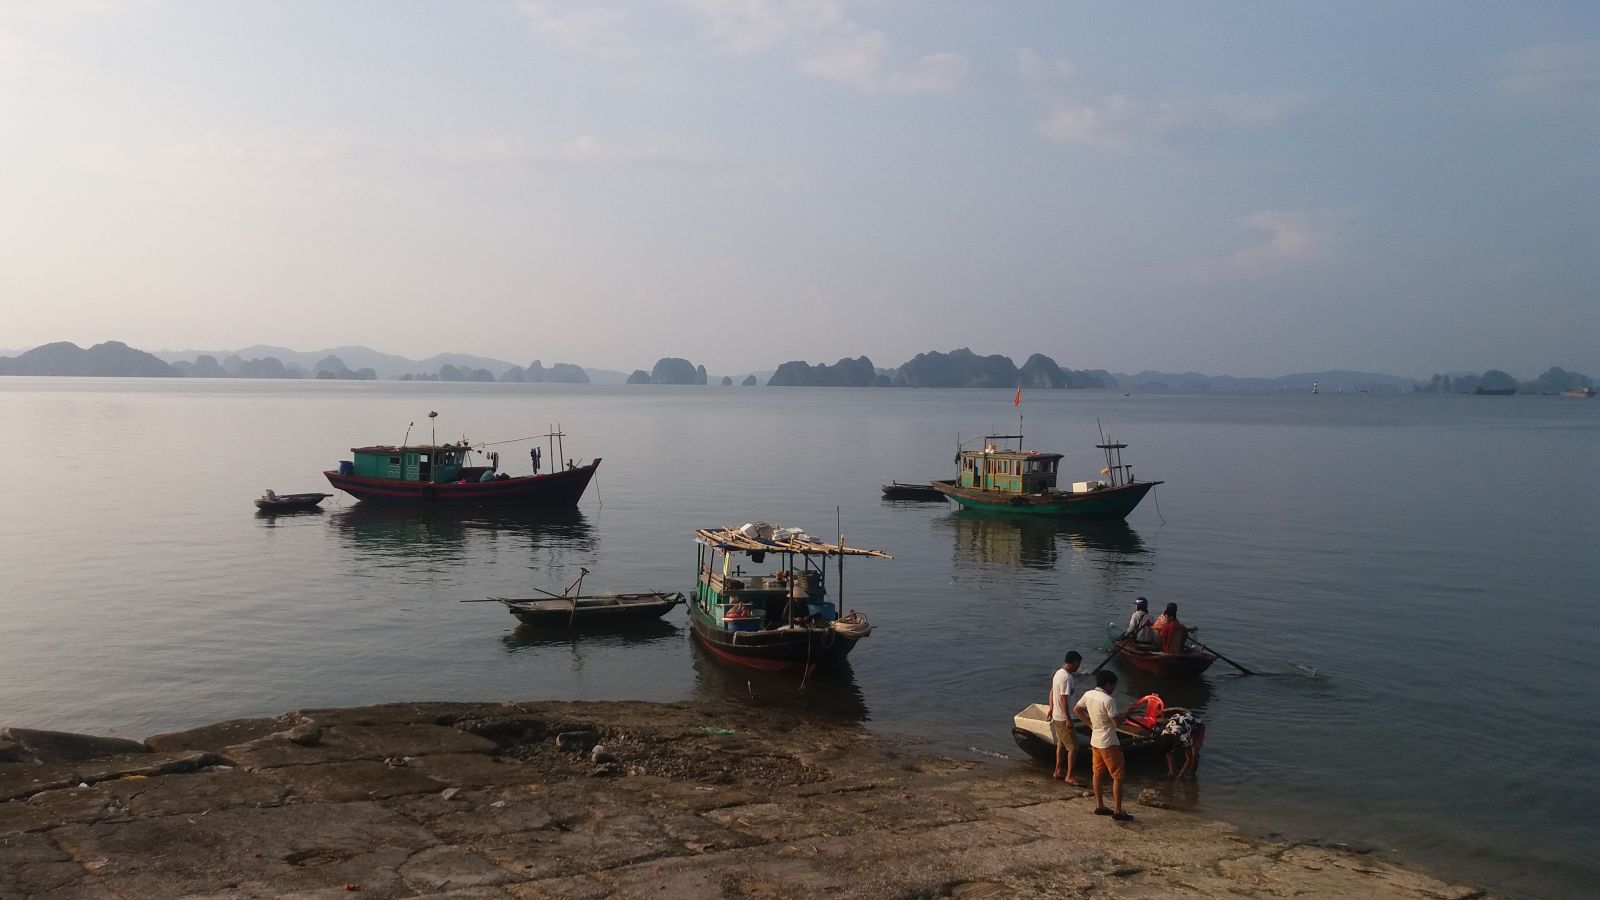 Local fishing in Quan Lan island